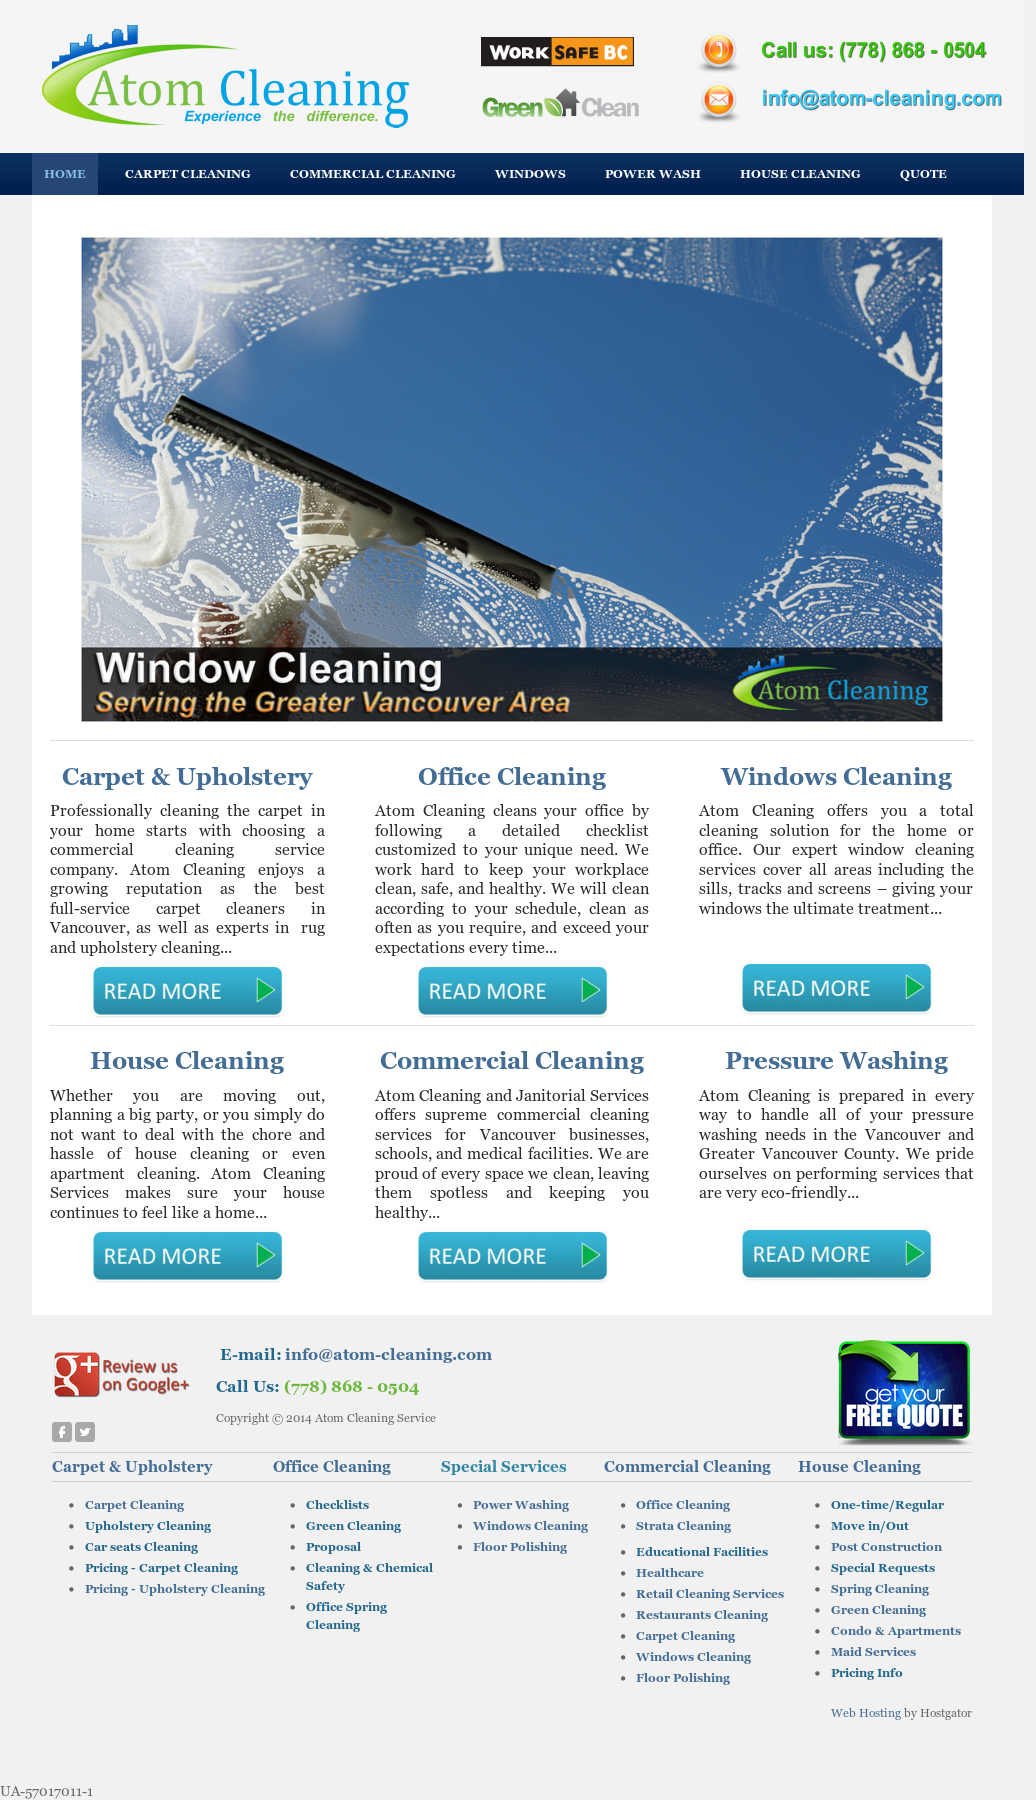 Atom Cleaning Service Competitors, Revenue and Employees